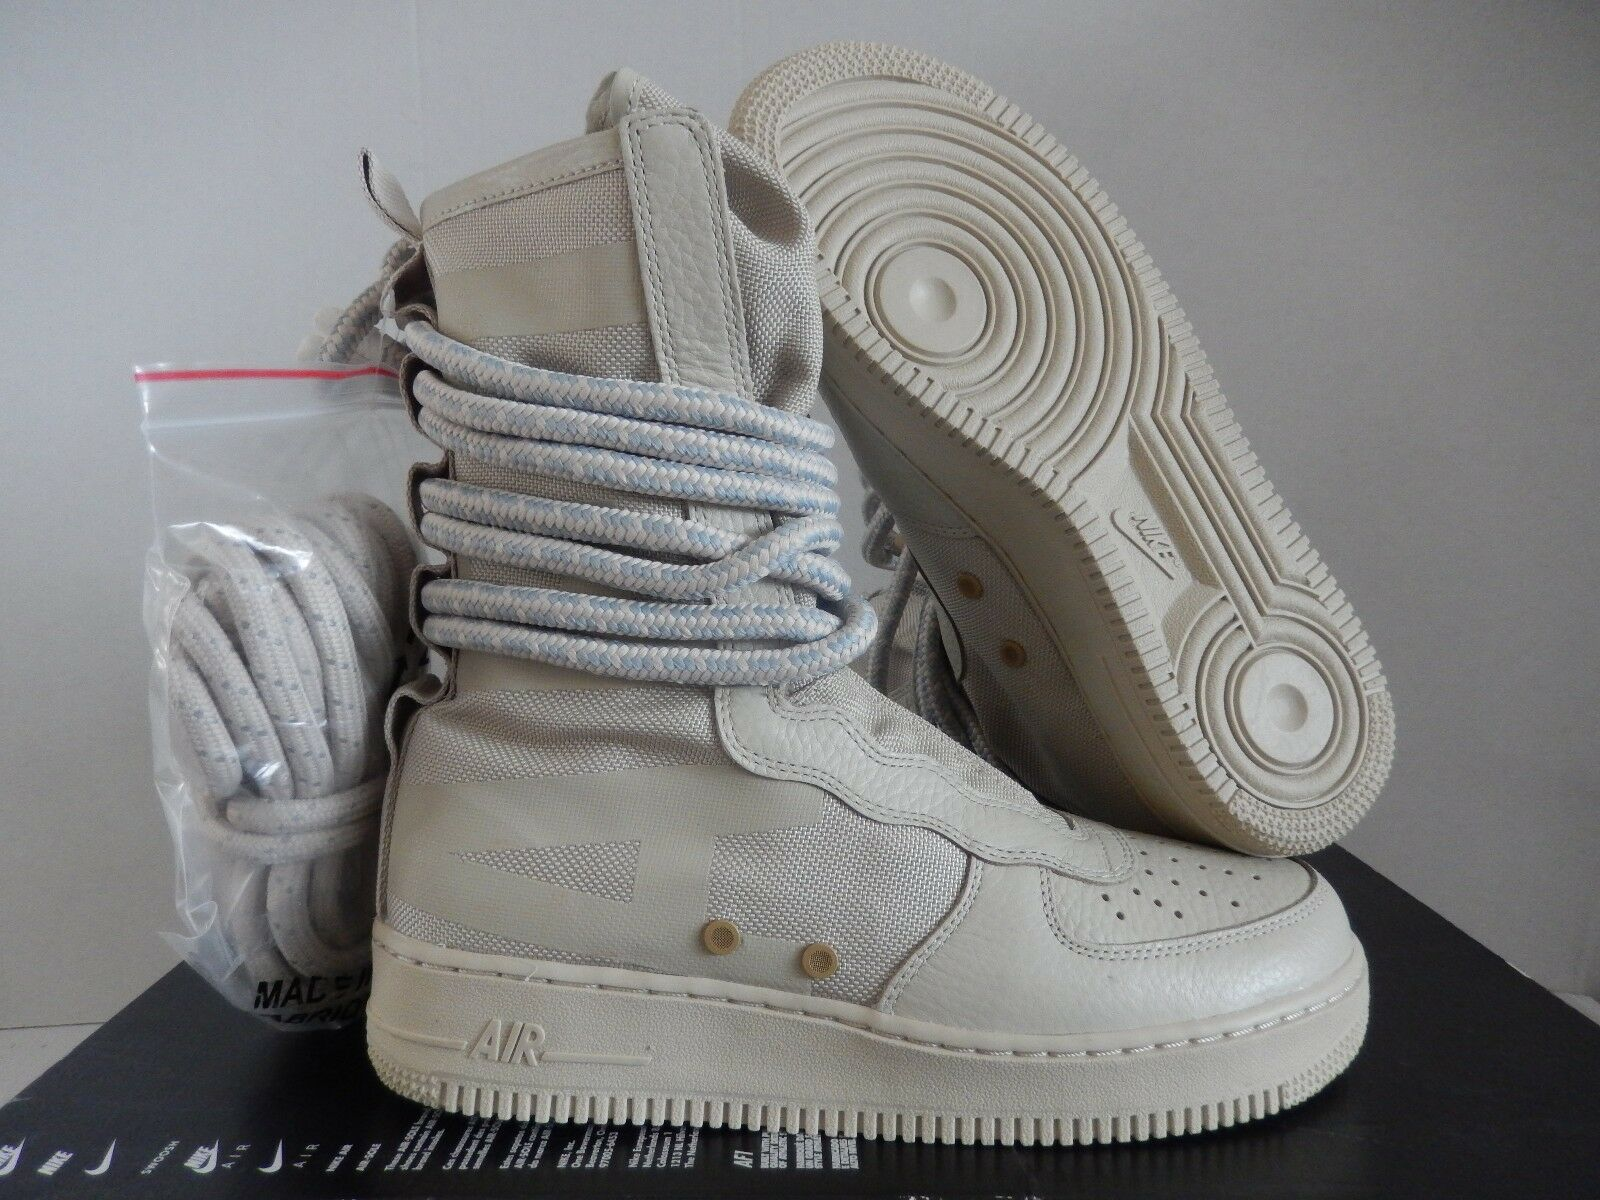 Nike air force 1 sf af1 ciao speciale sul campo rattan-rattan sz - aa1128-200]